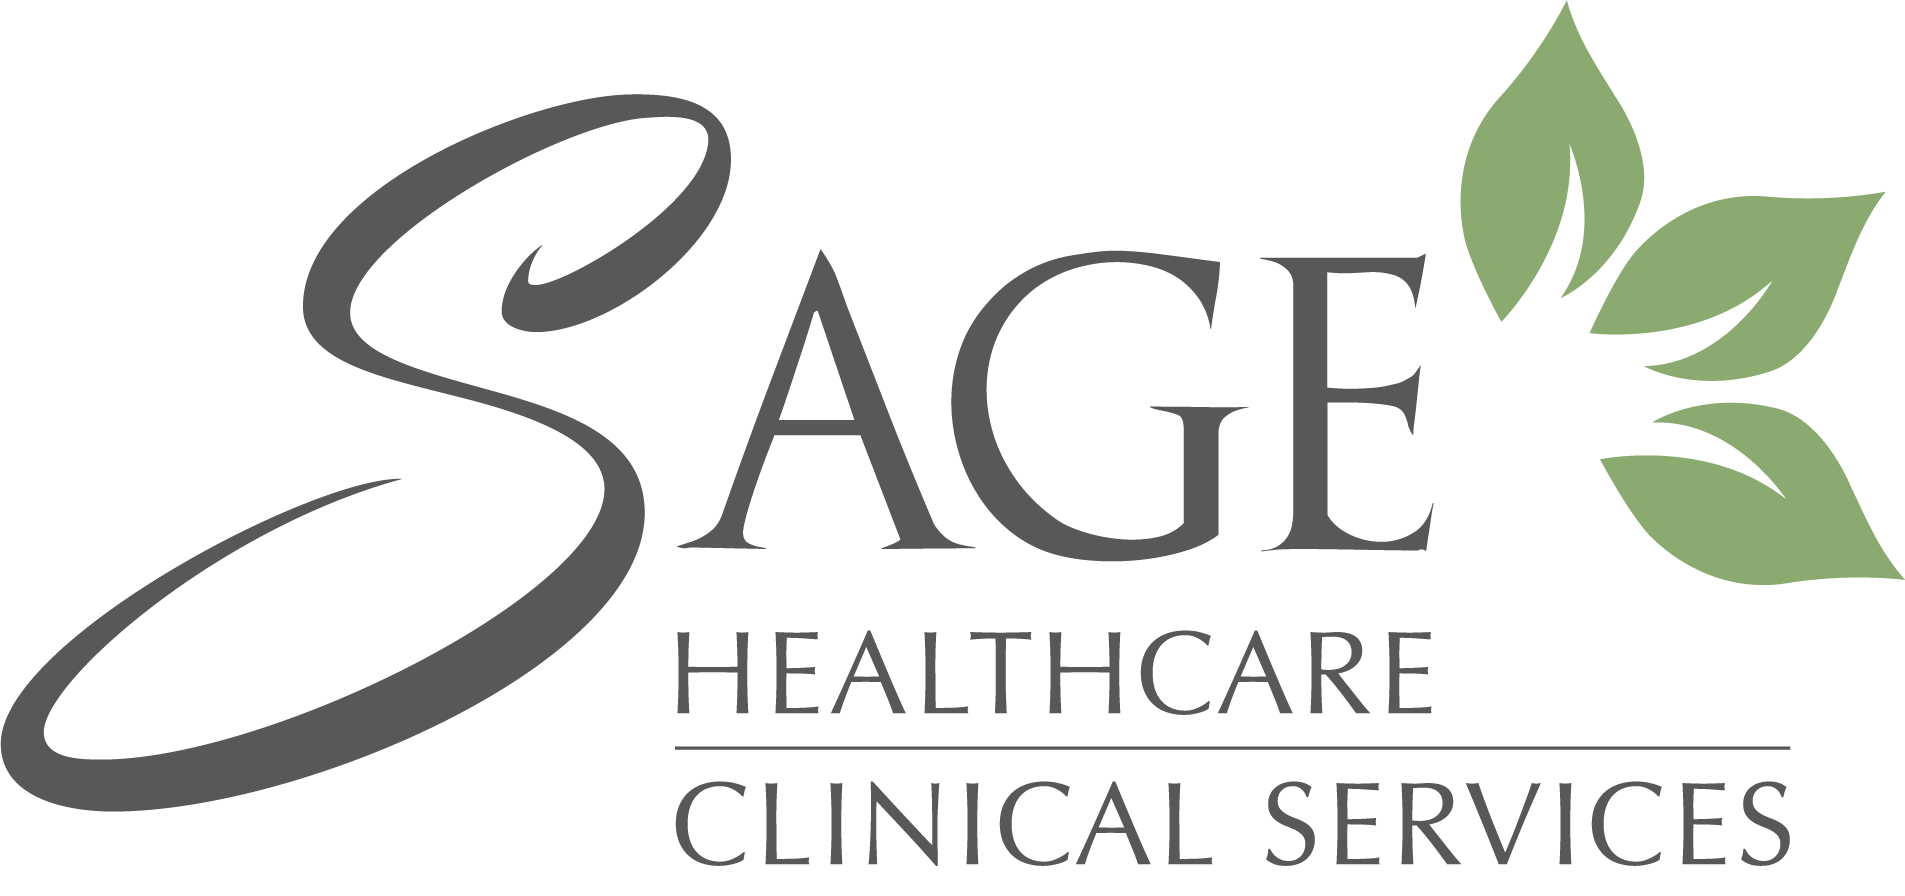 SAGE Healthcare Clinical Services Logo (Transparent Background)